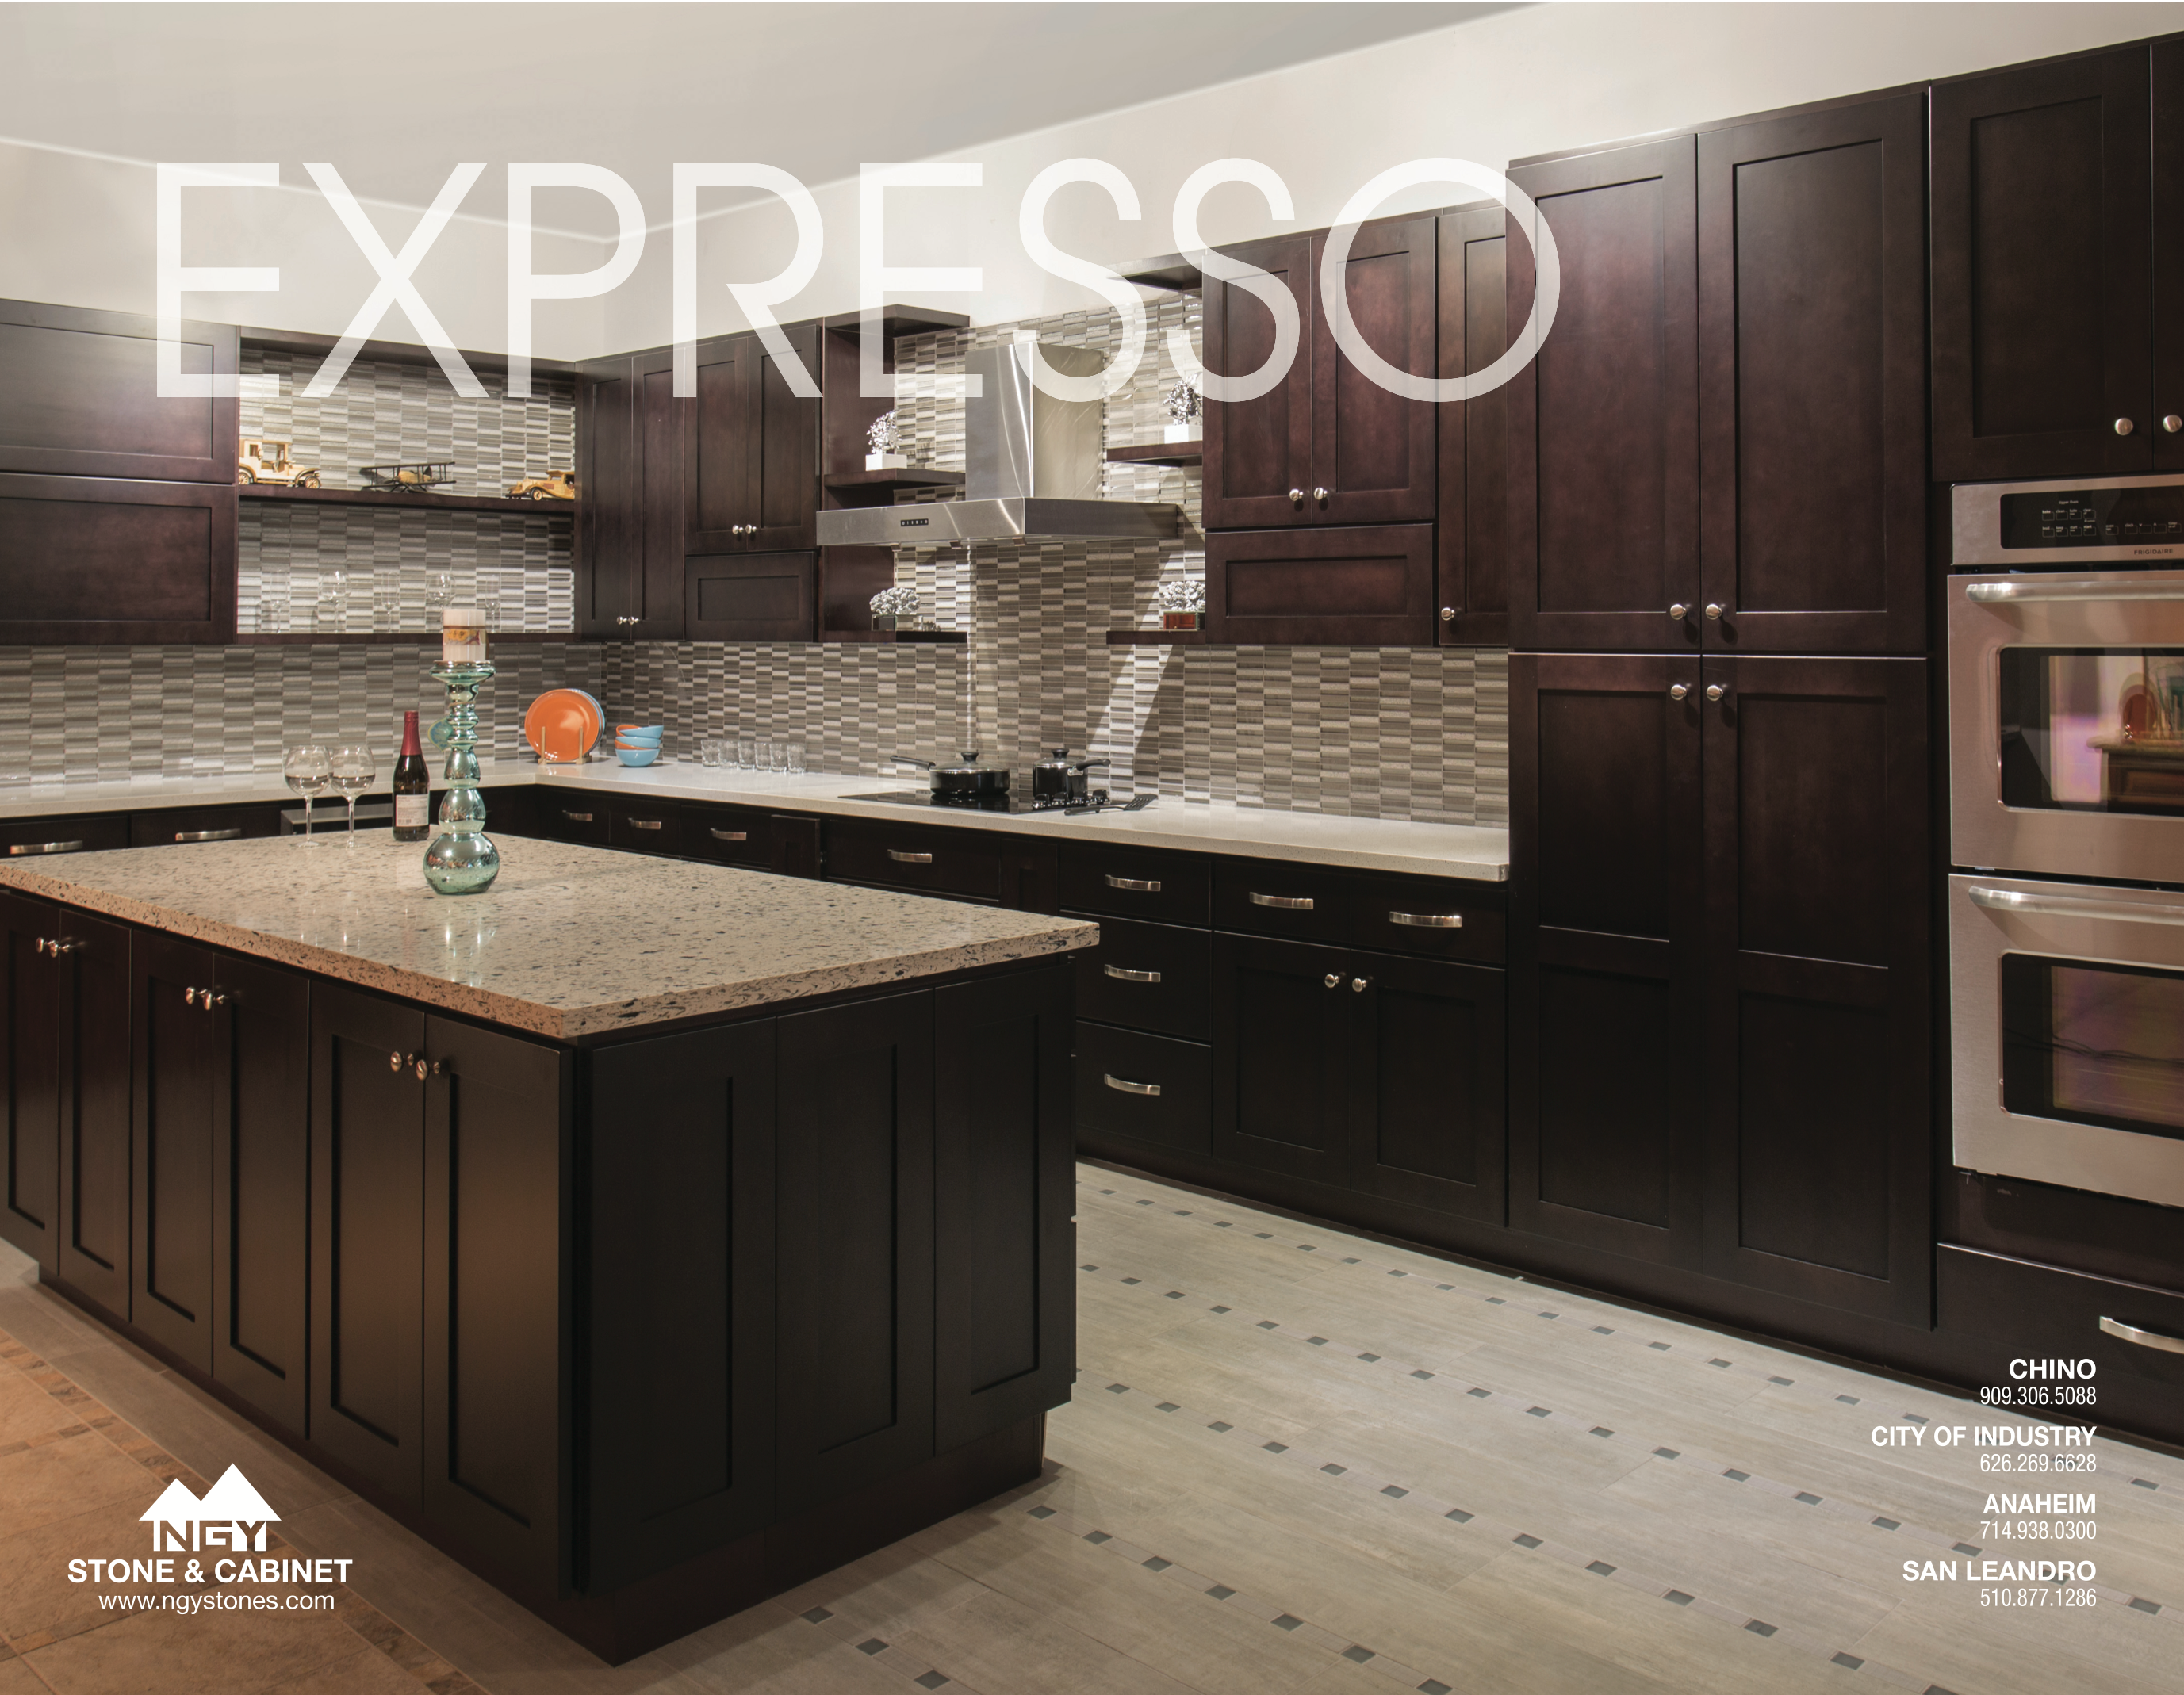 Beech Espresso Kitchen Cabinets Call Or Email For Pricing Espresso Kitchen Cabinets Kitchen Kitchen Design